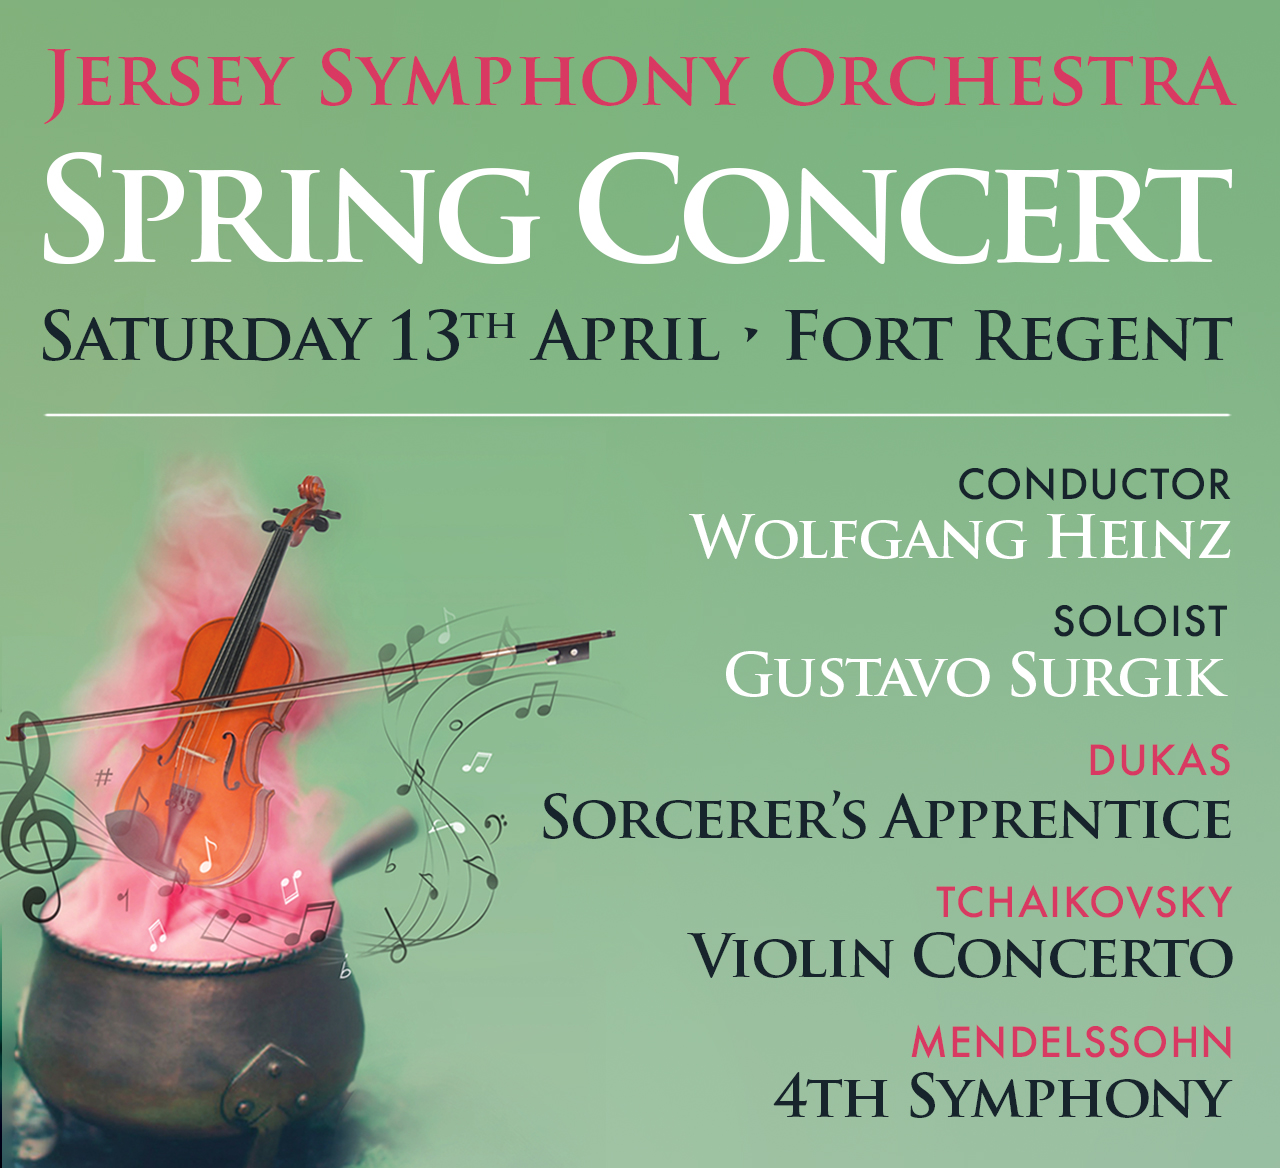 Jersey Symphony Orchestra - Spring Concert